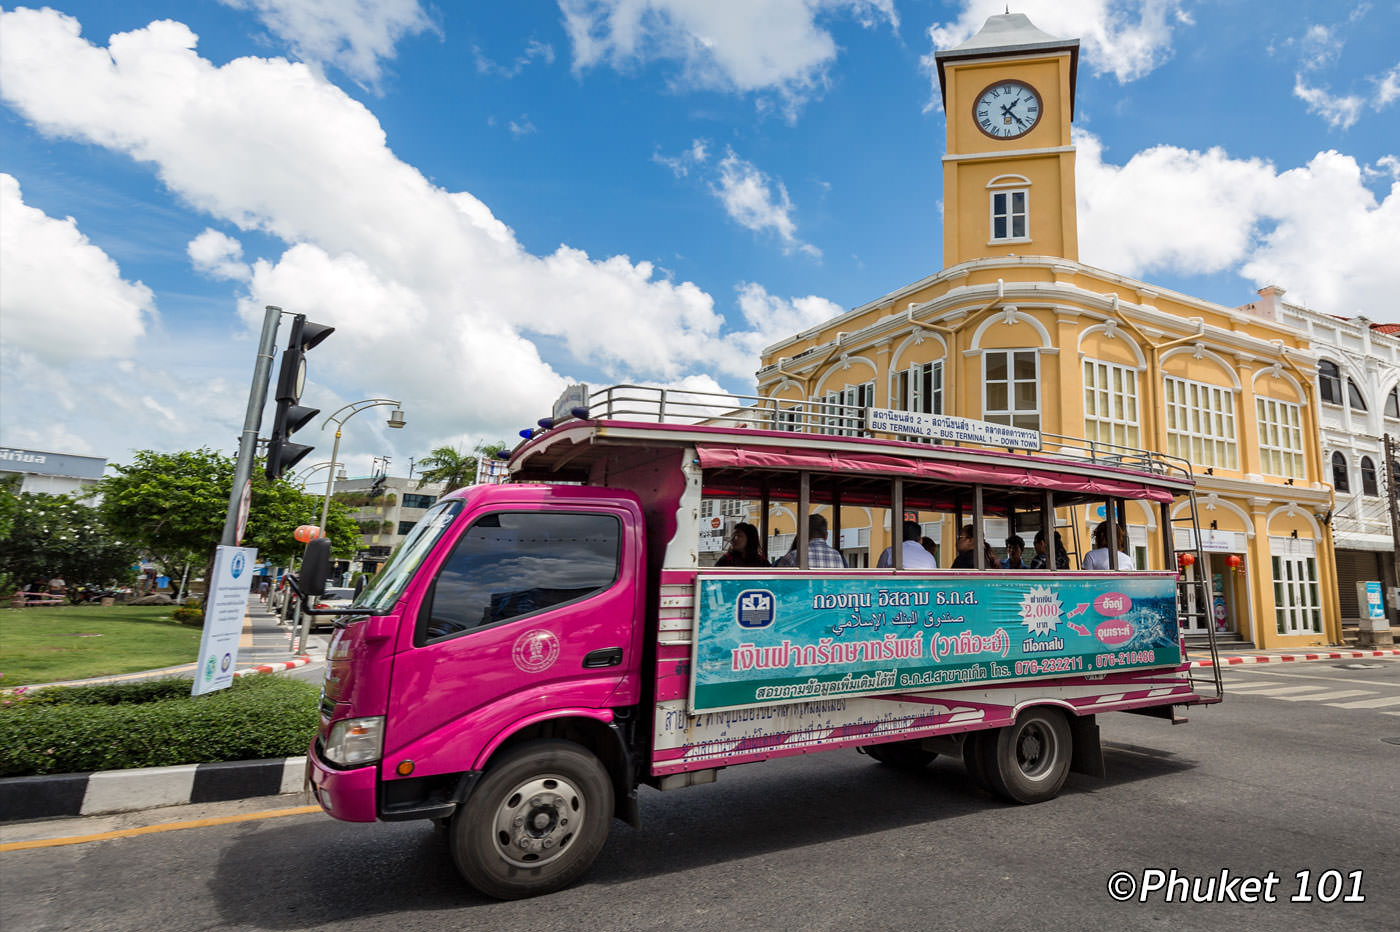 Phuket Smart Bus and Local Blue Bus